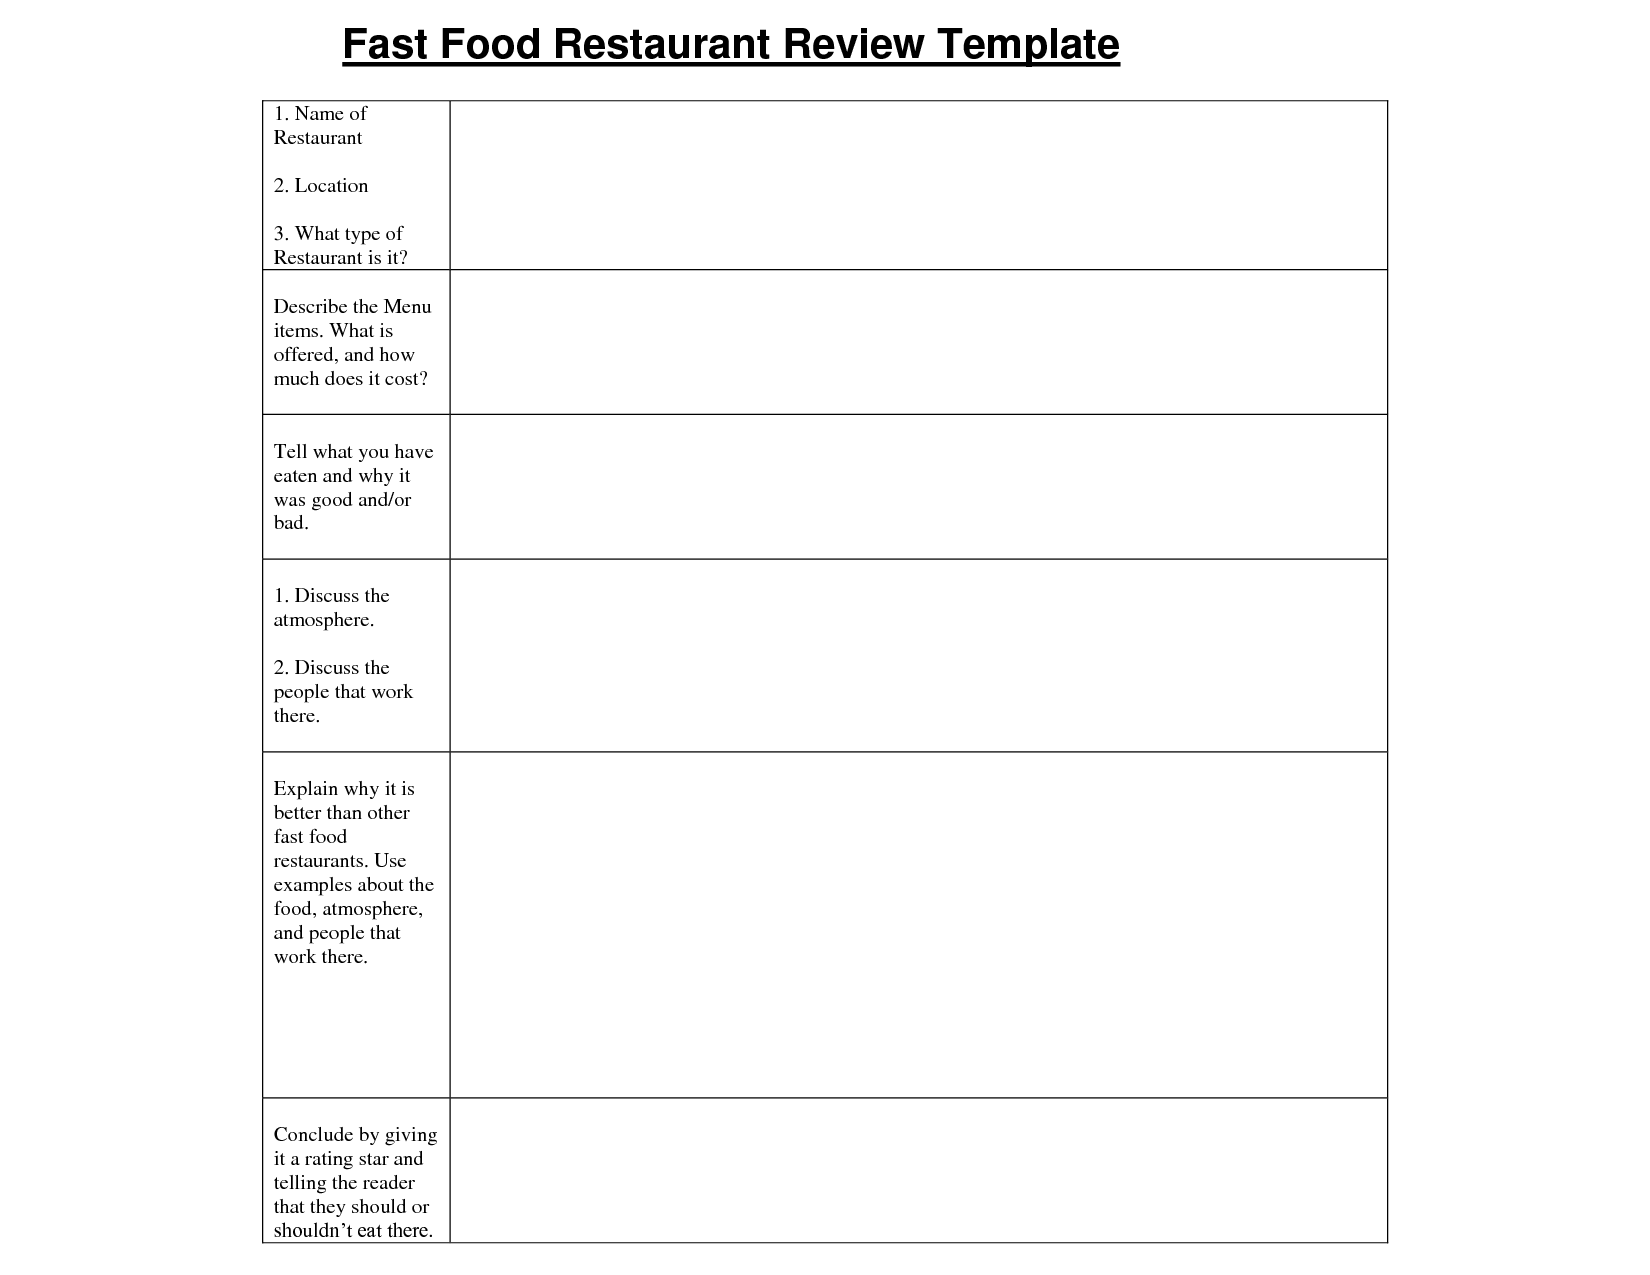 Restaurant Review Sample  Google Search  Restaurant Reviews